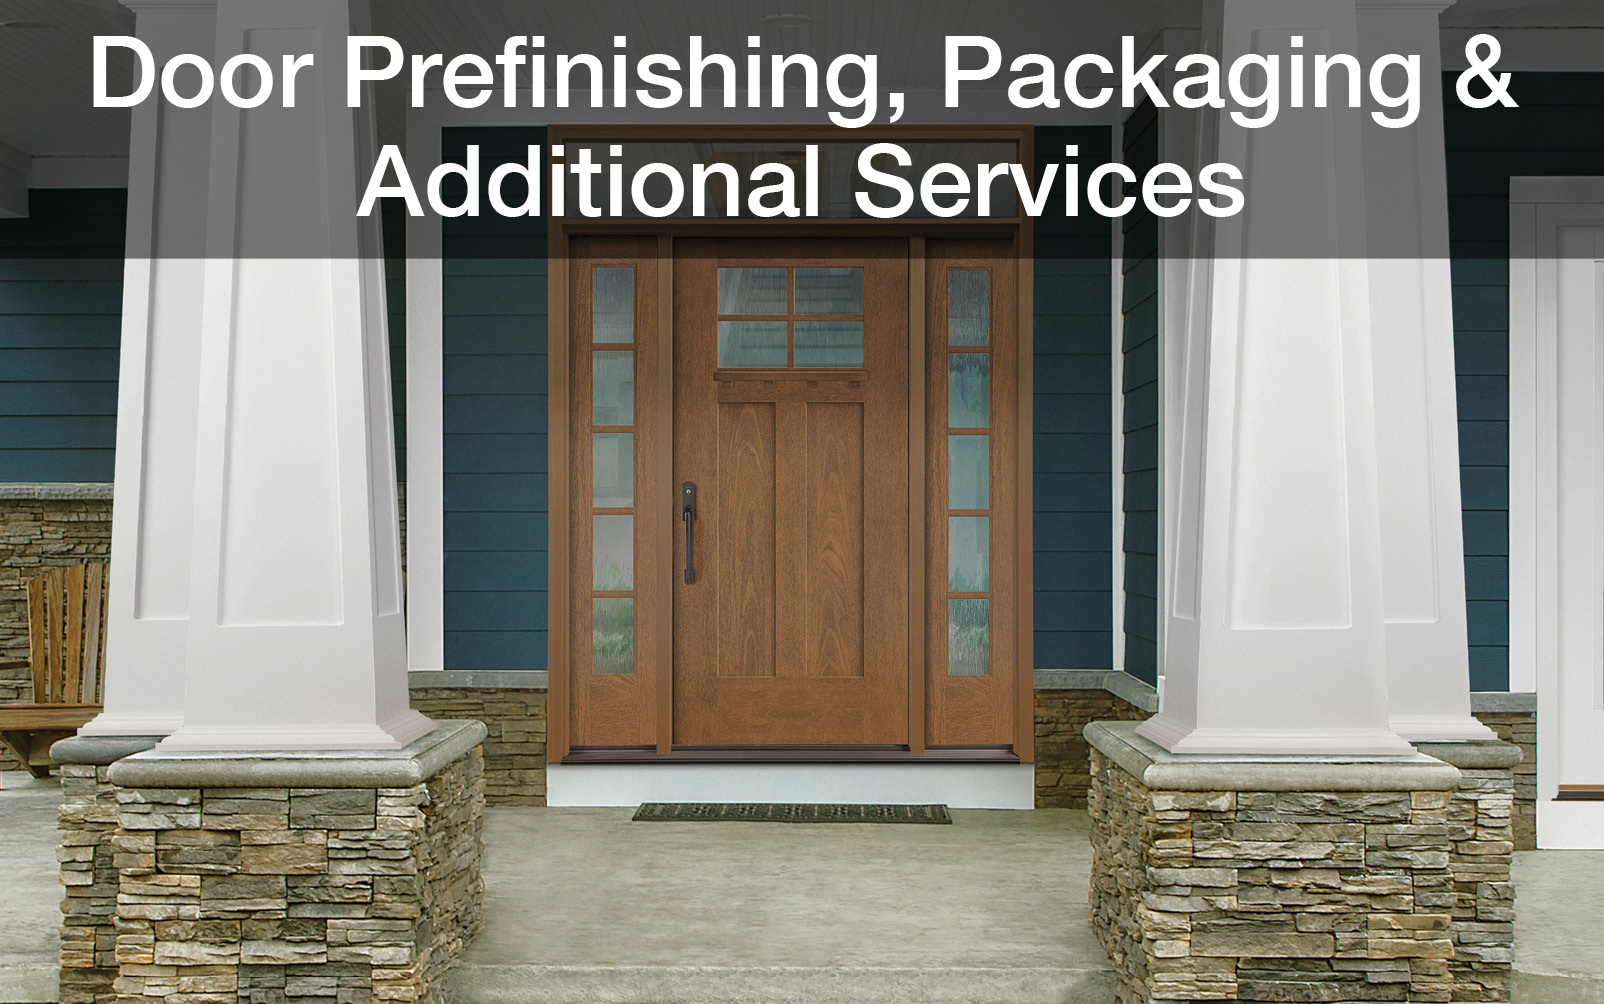 Door Prefinishing, Packaging & Additional Services